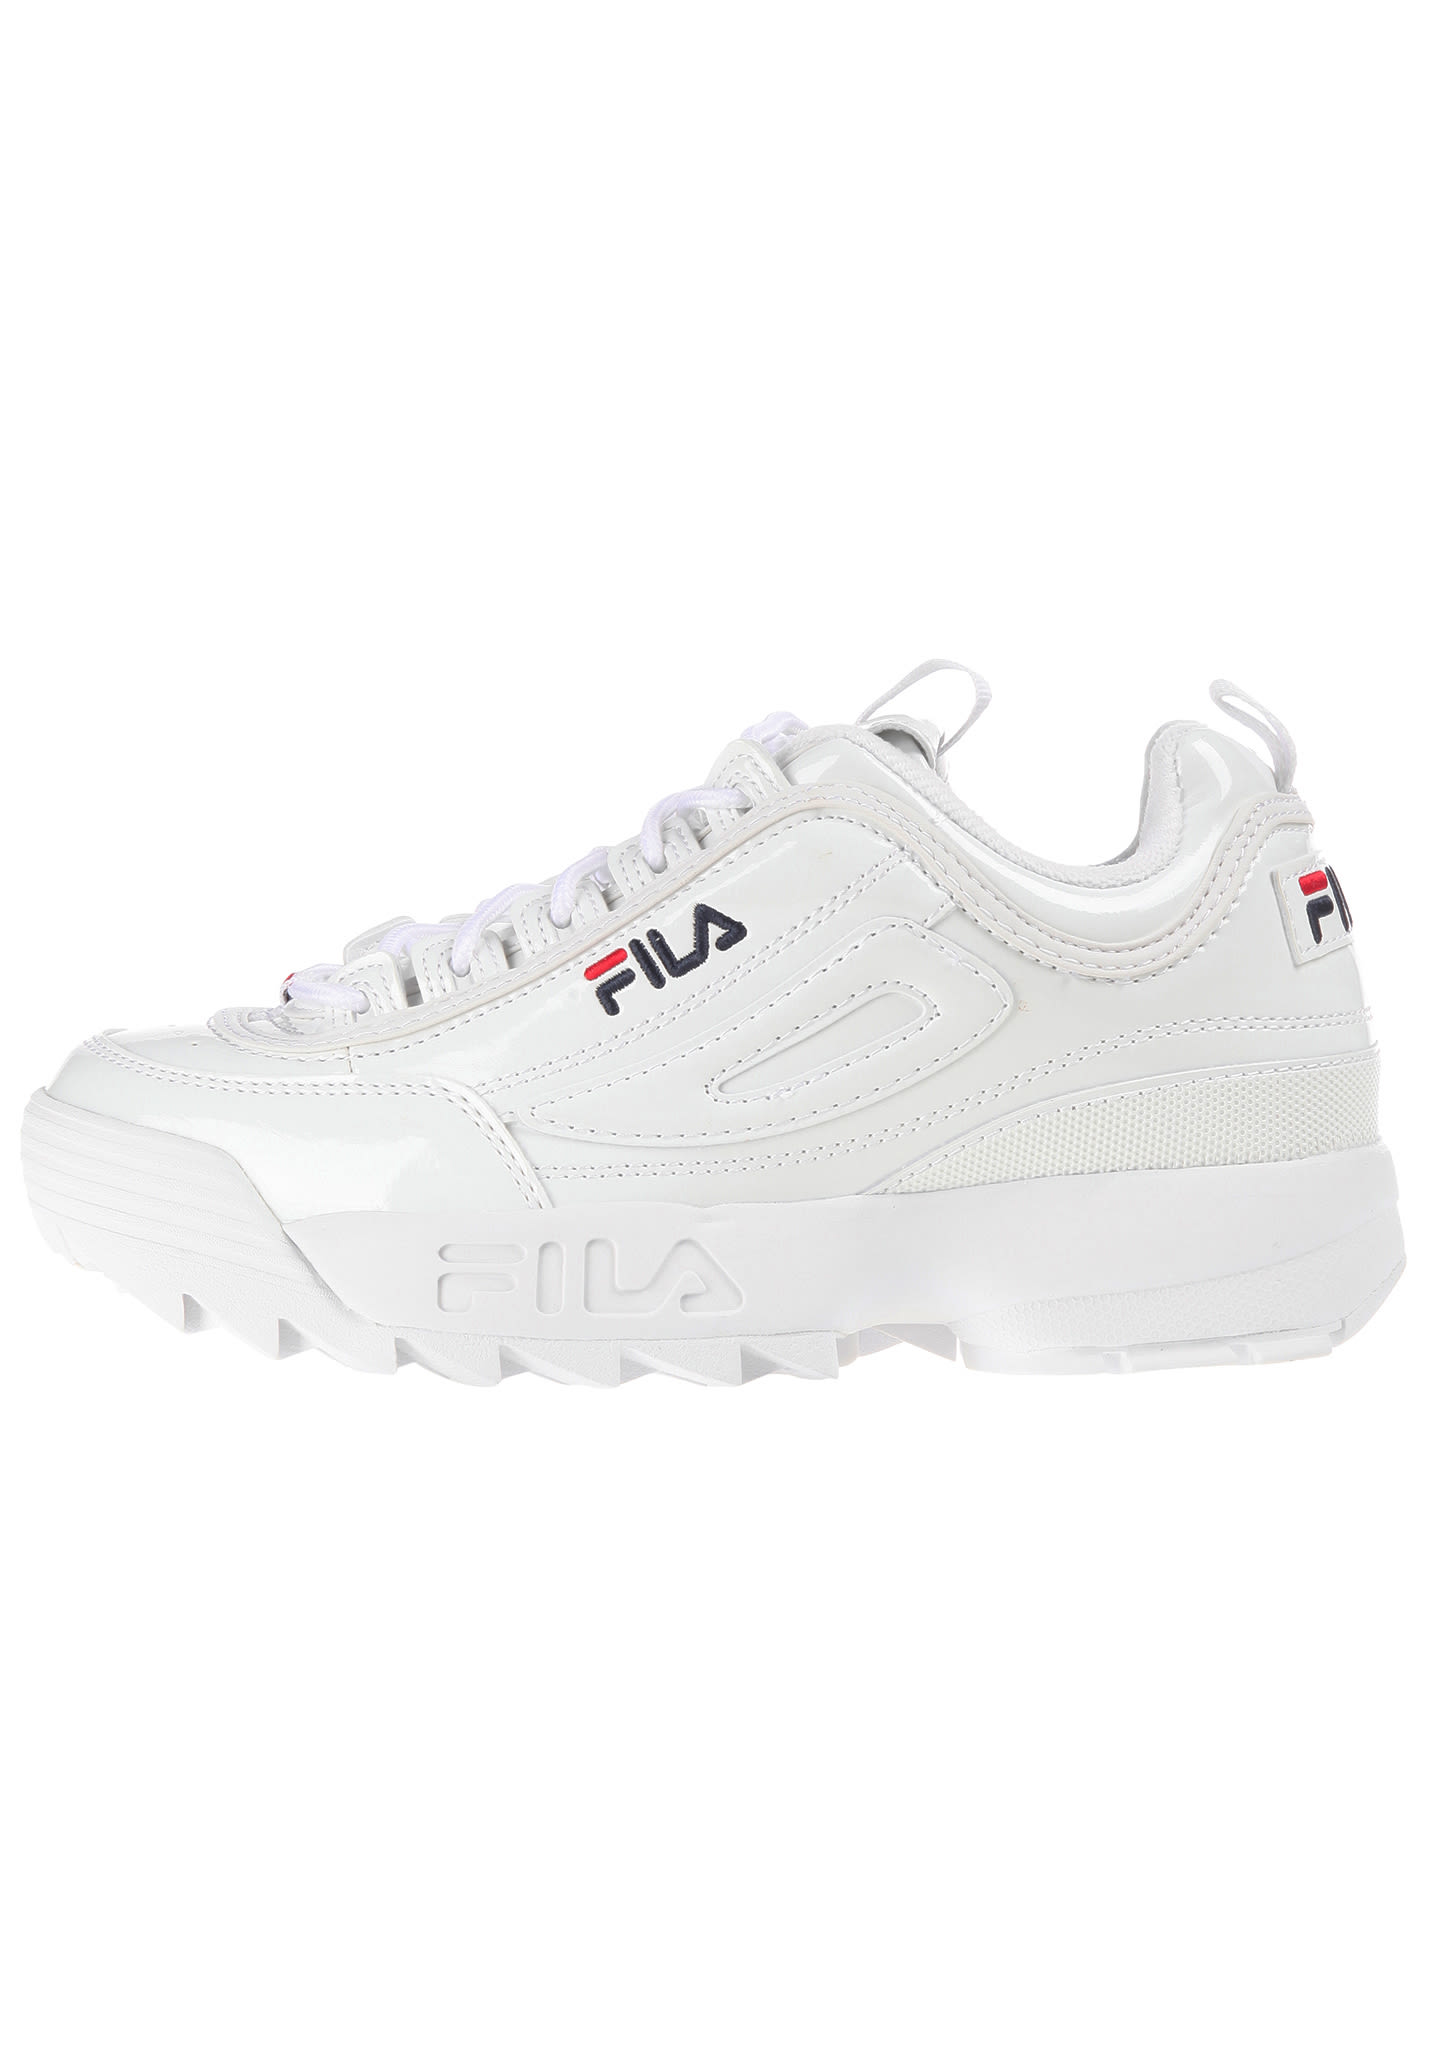 Fila Heritage Disruptor - Sneakers for Women - White